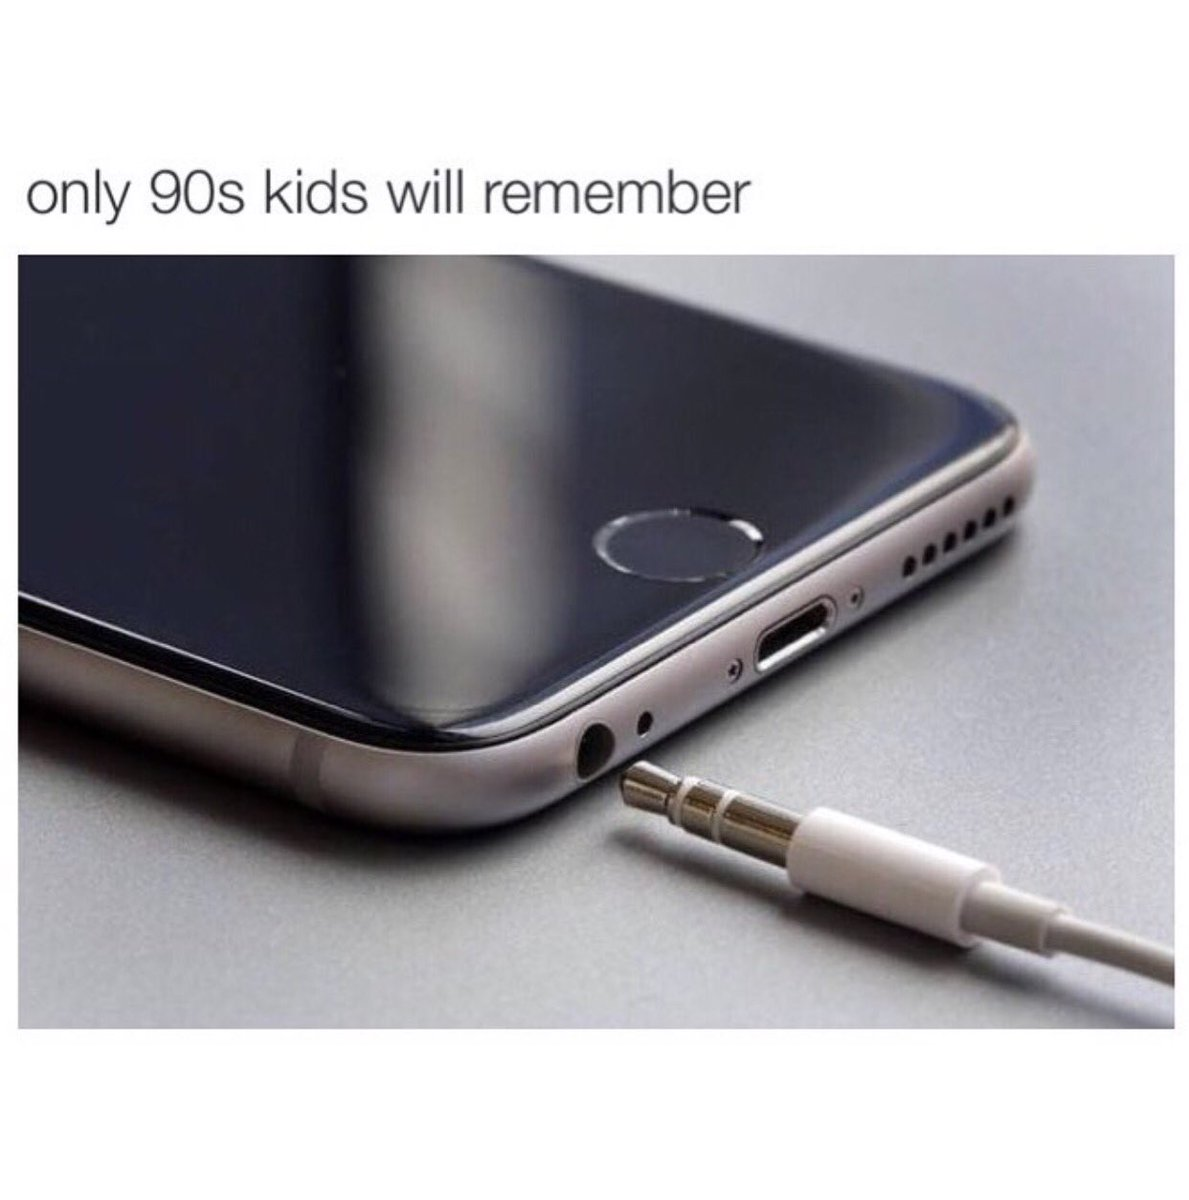 001 90s kids will remember apple airpods controversy know your meme